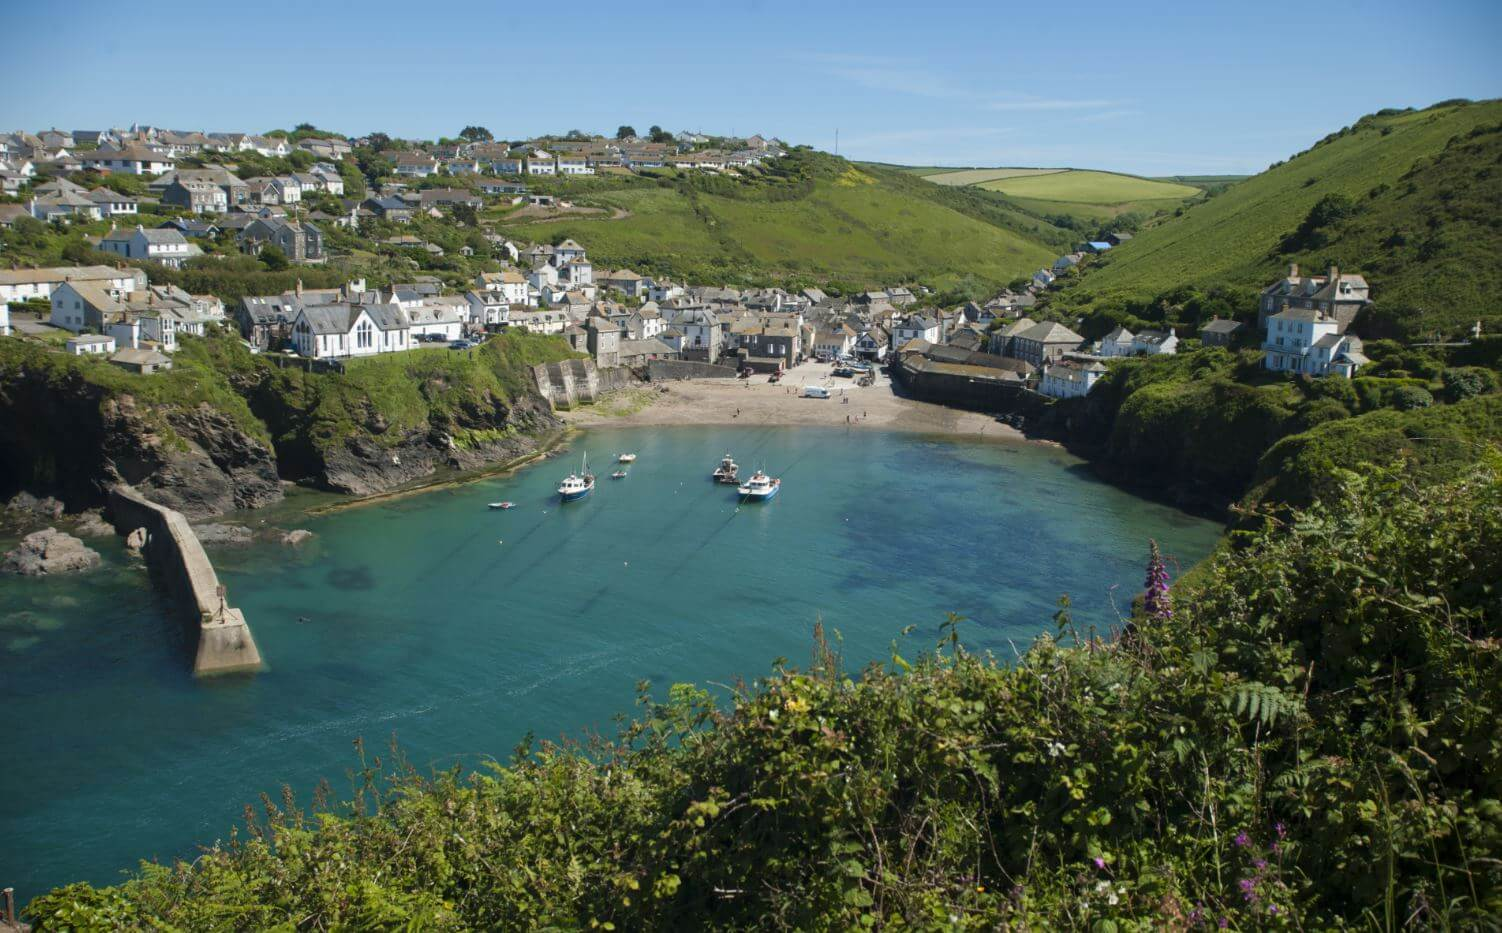 Doc Martin, Poldark, Grand Houses and Gardens